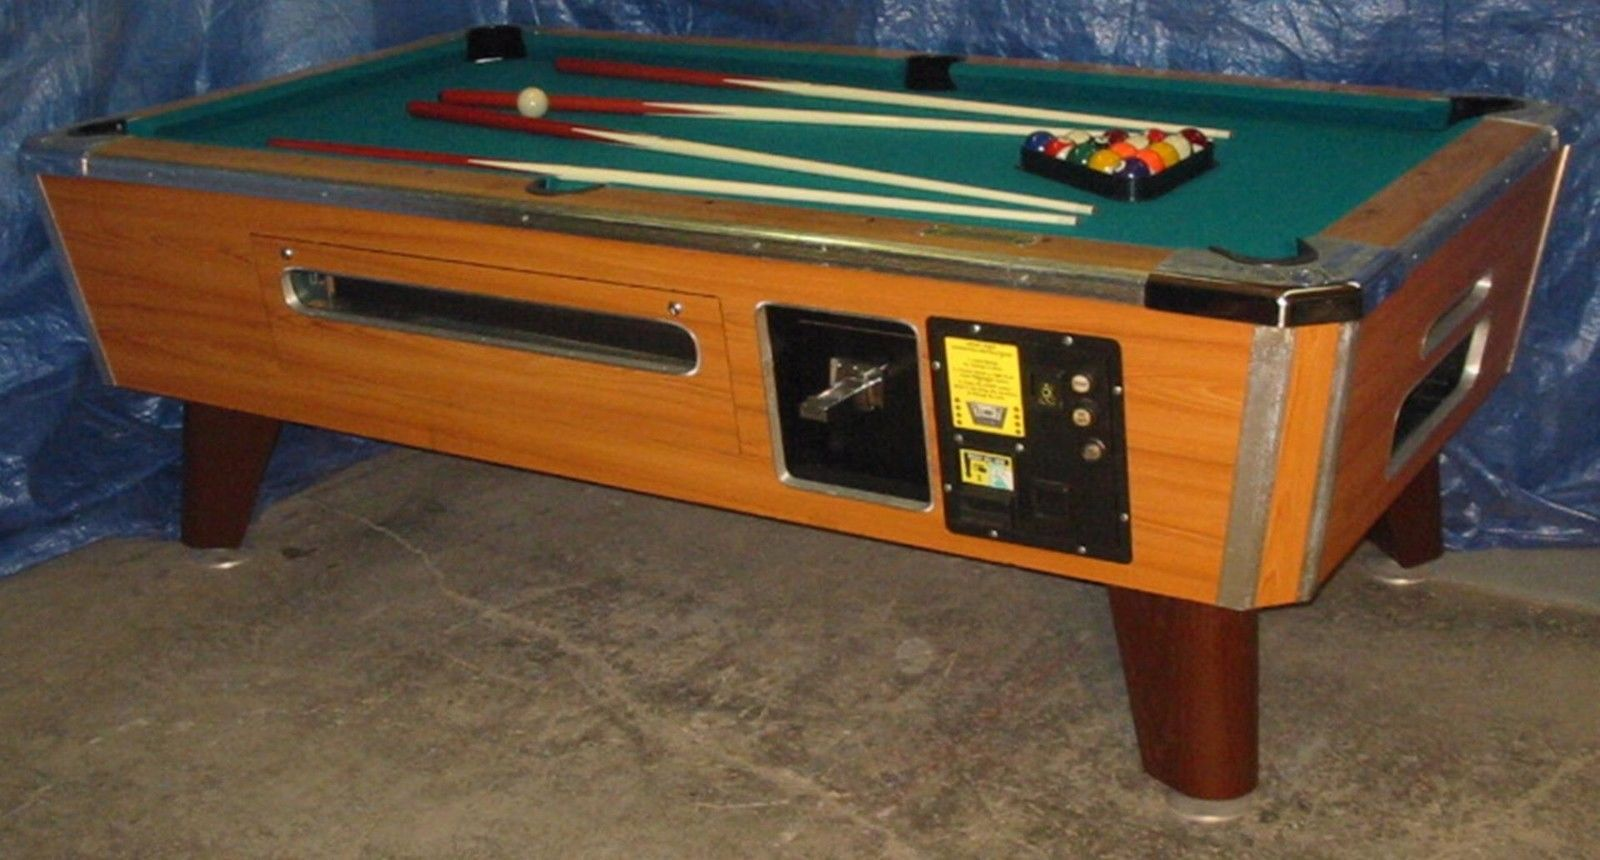 Two valley cougar zd 7 coin op 7 bar size pool table refurb wbill two valley cougar zd 7 coin op 7 bar size pool table refurb wbill accept watchthetrailerfo